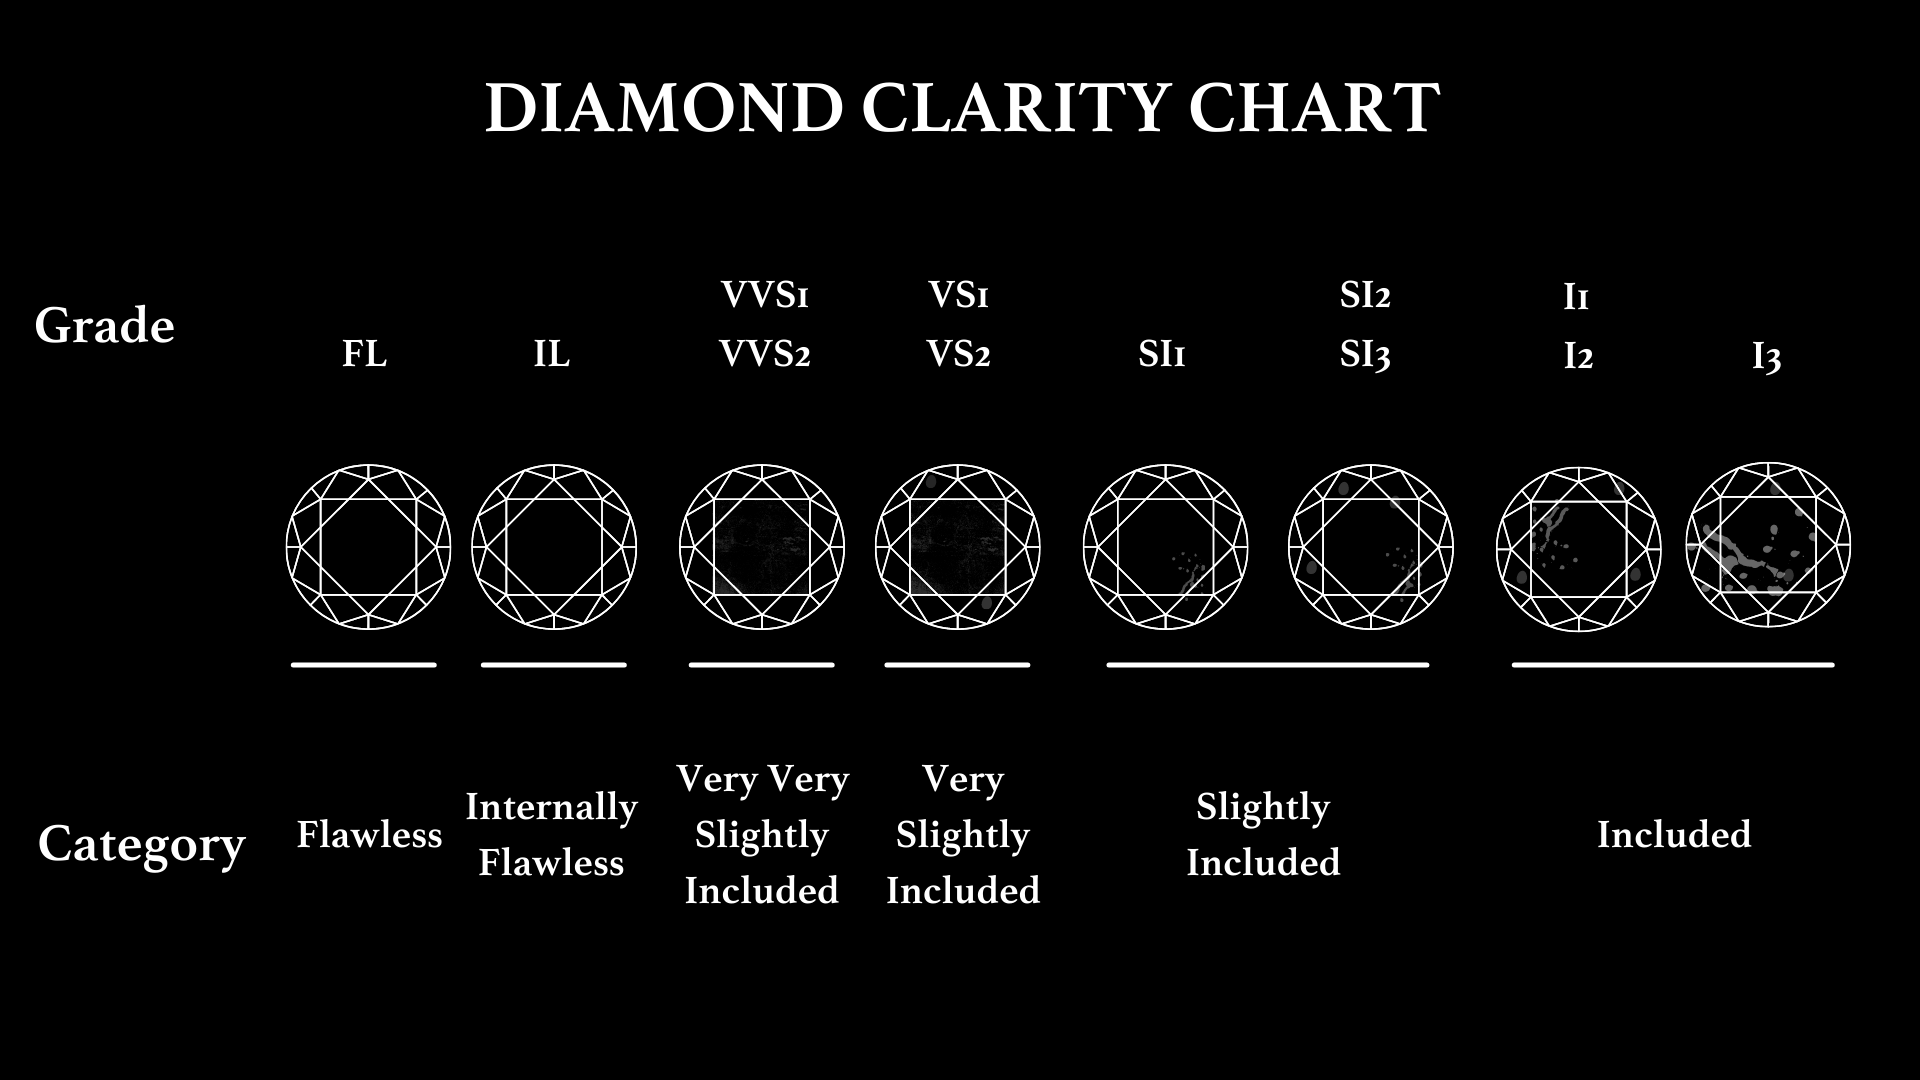 diamond clarity chart with diamond clarity scale